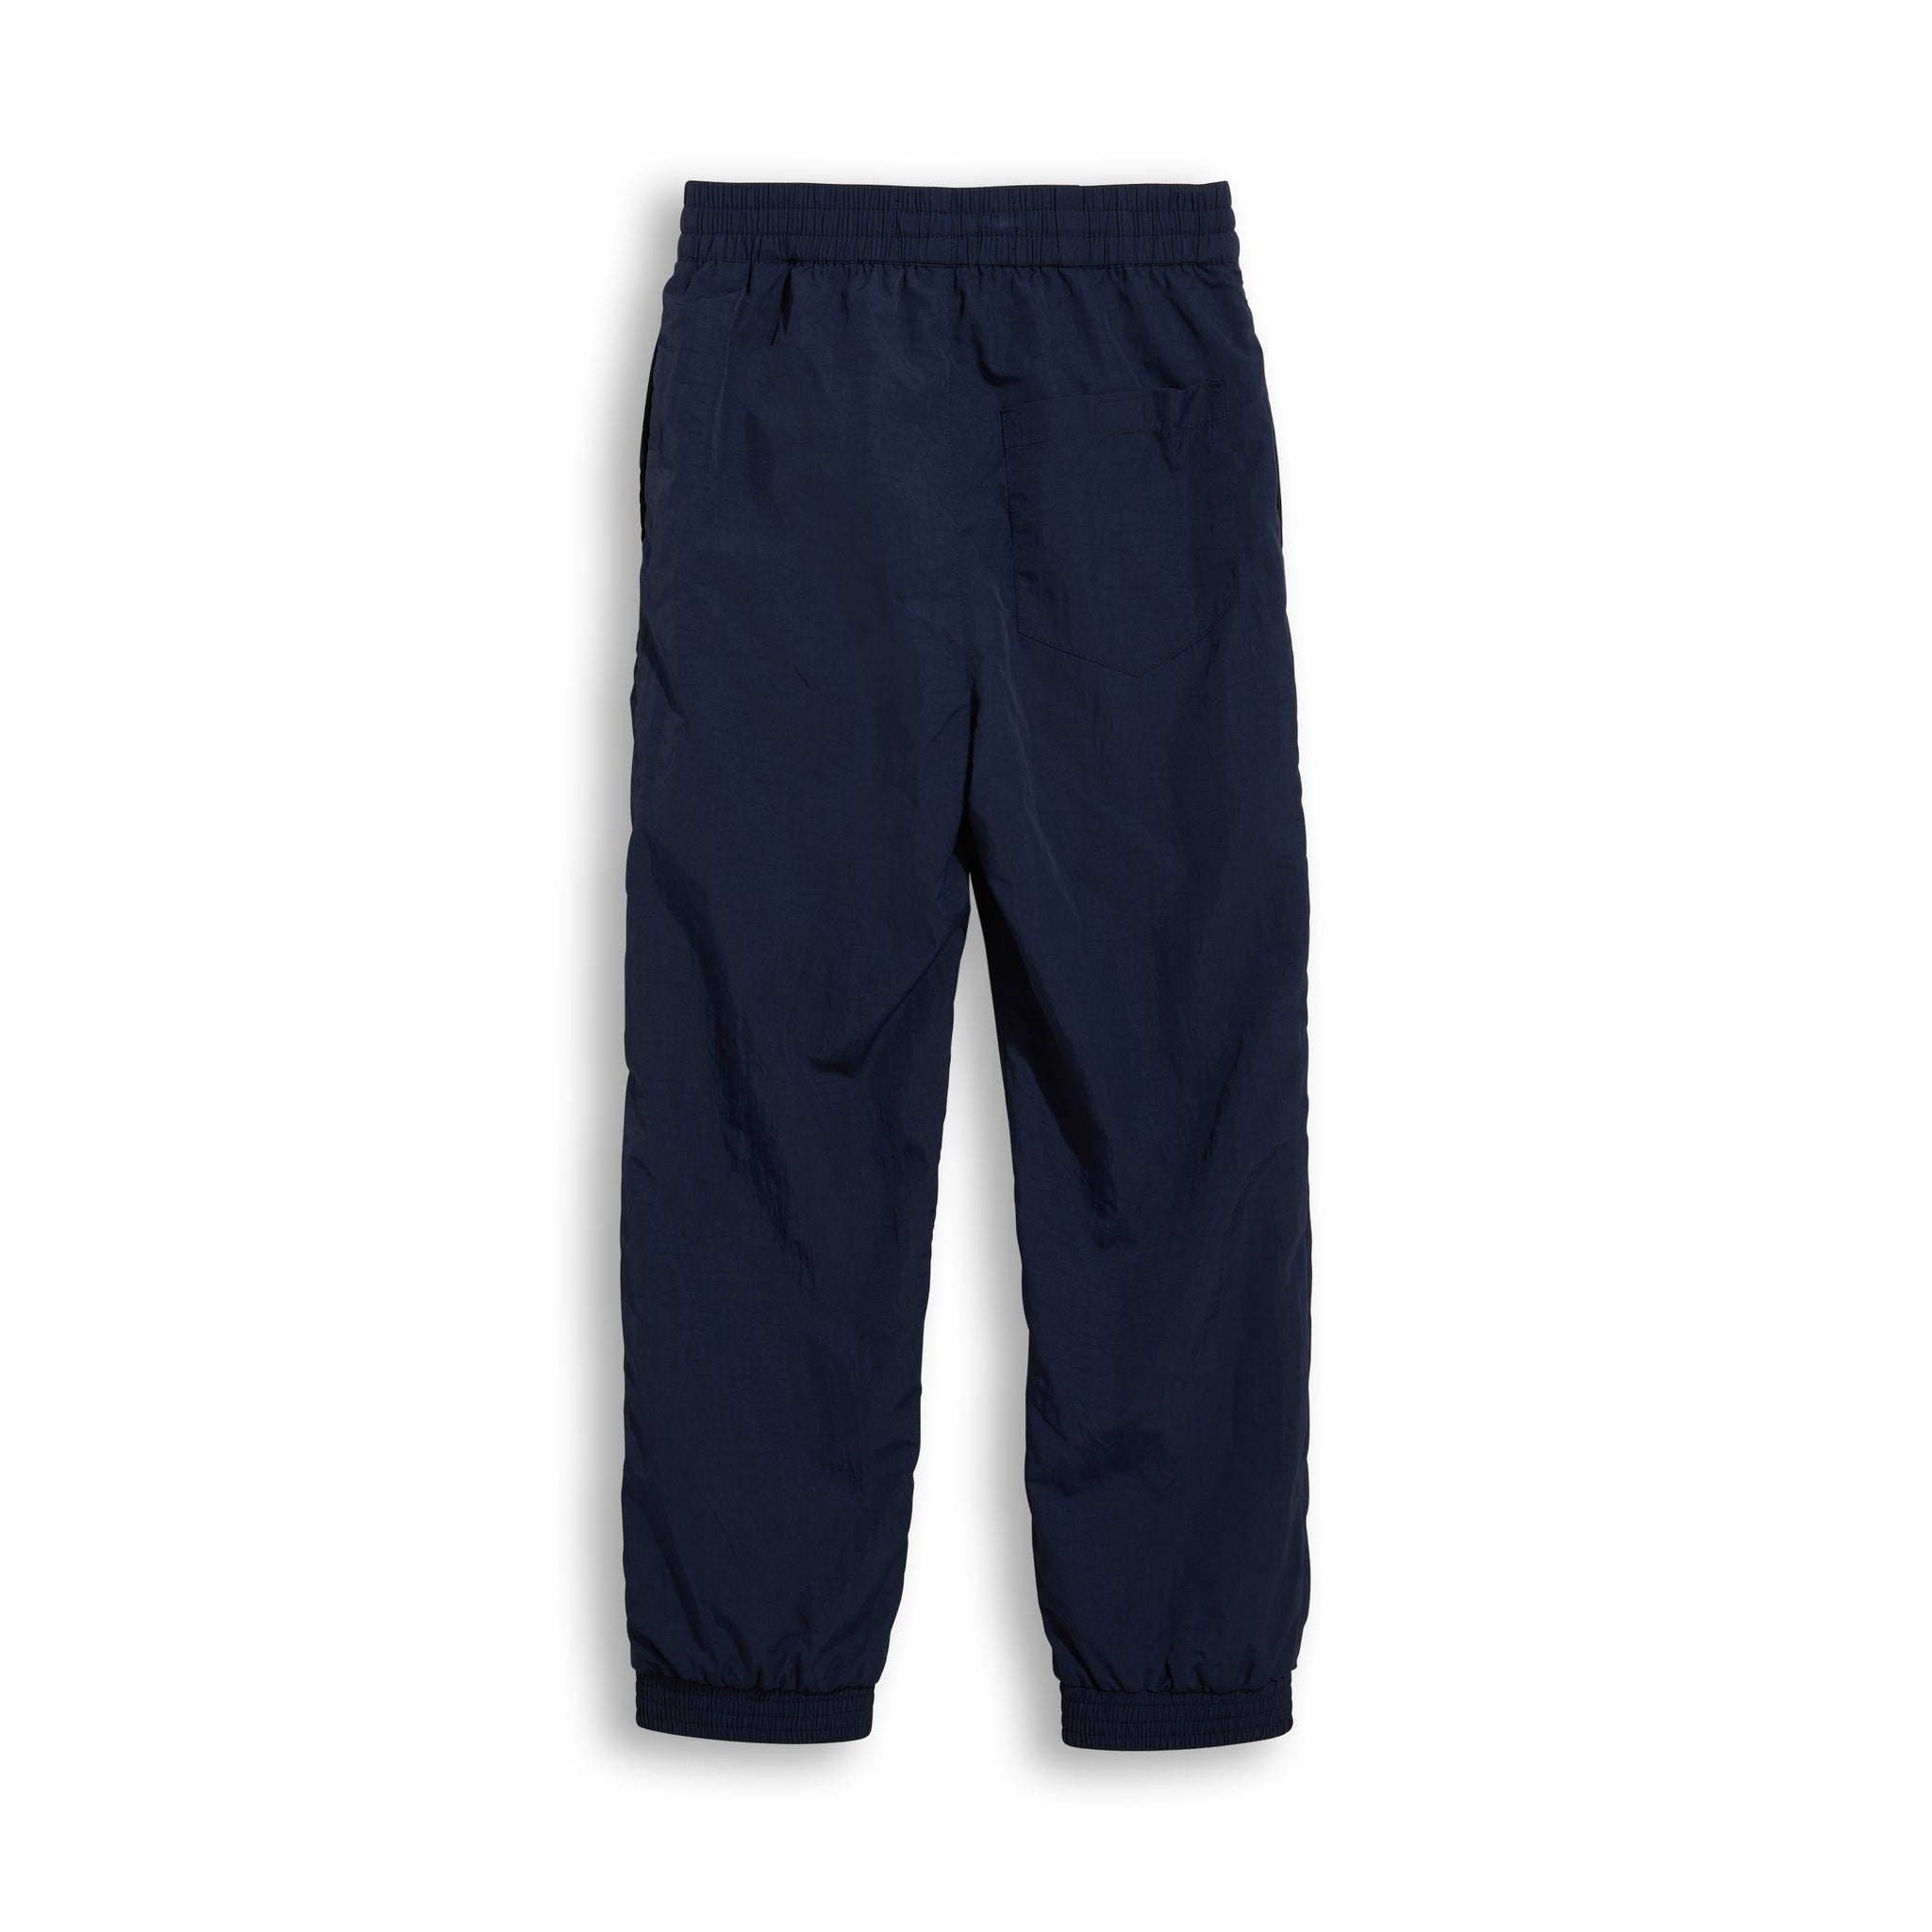 CONNIE Sailor Blue - Track Pants 2